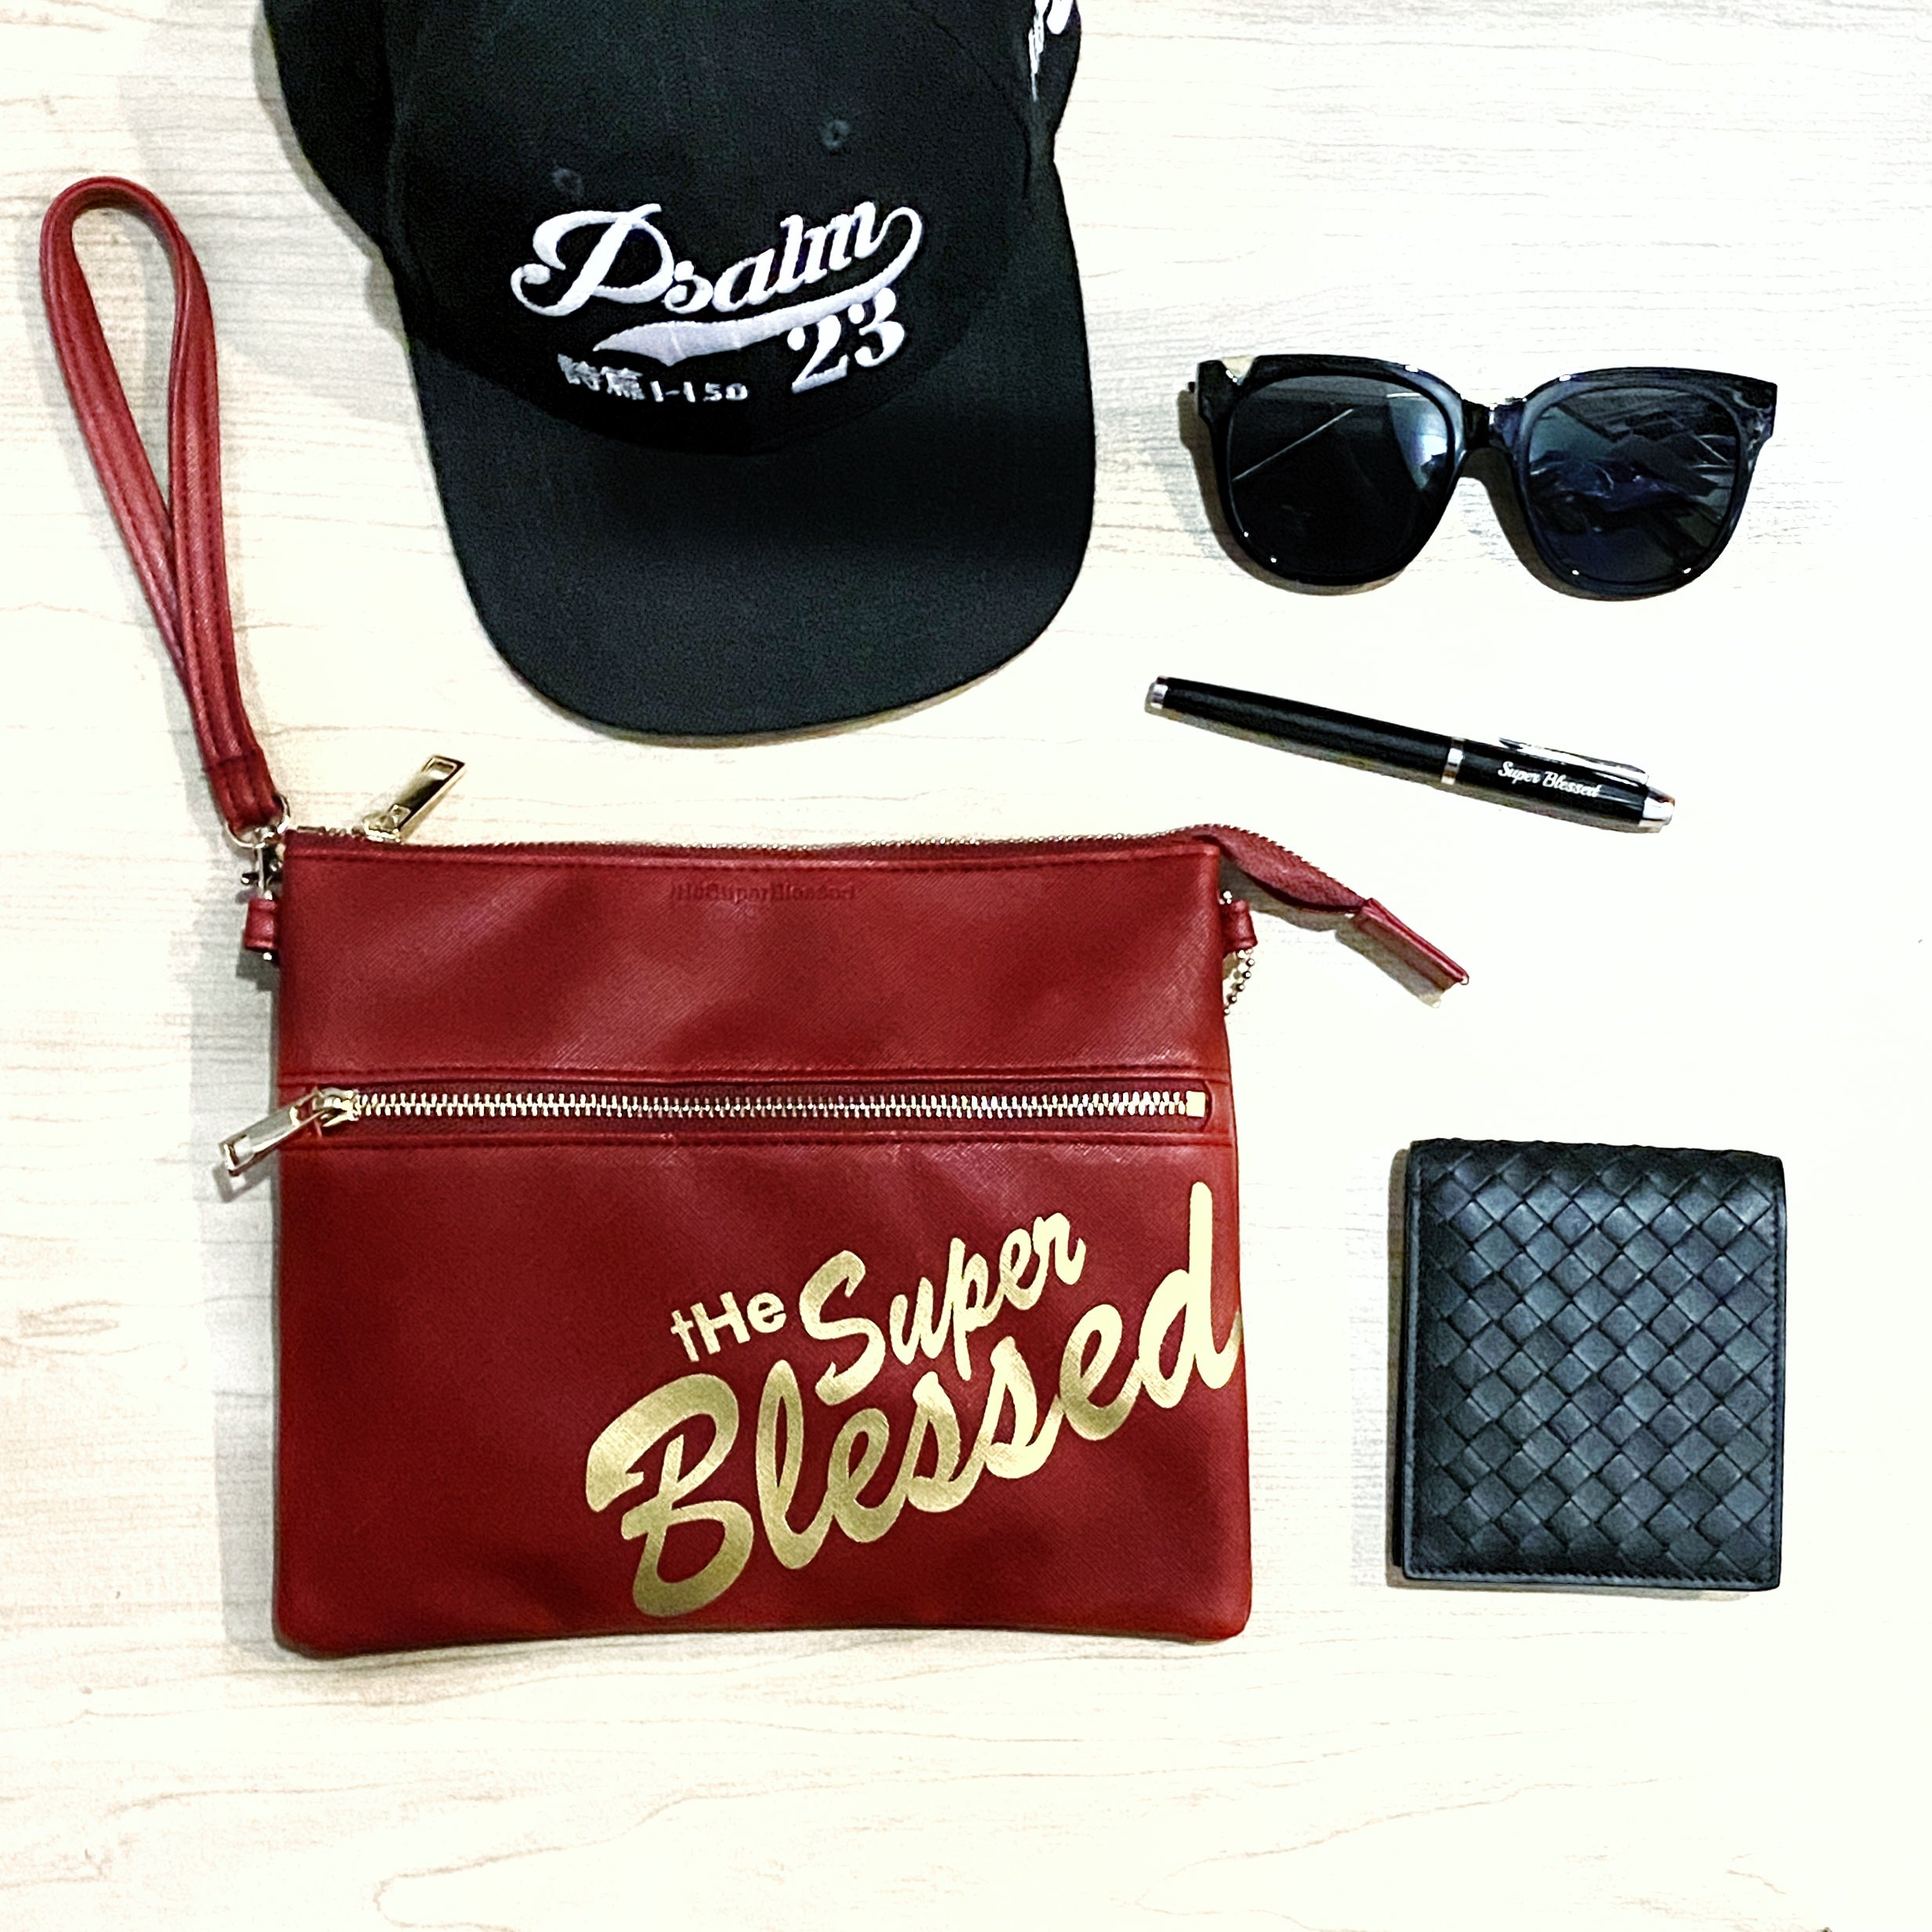 ROCKONLINE | New Creation Church | Joseph Prince | The Super Blessed Sling Clutch Bag | Accessories | Fashion | Apparel | Youth | Teen | Boys | Girls | Scriptures | Blessed | Psalms 91  | Embroidery | Christian Gifts | The Super Blessed | Rock Bookshop | Rock Bookstore | Star Vista | Free Delivery for Singapore Orders above $50.